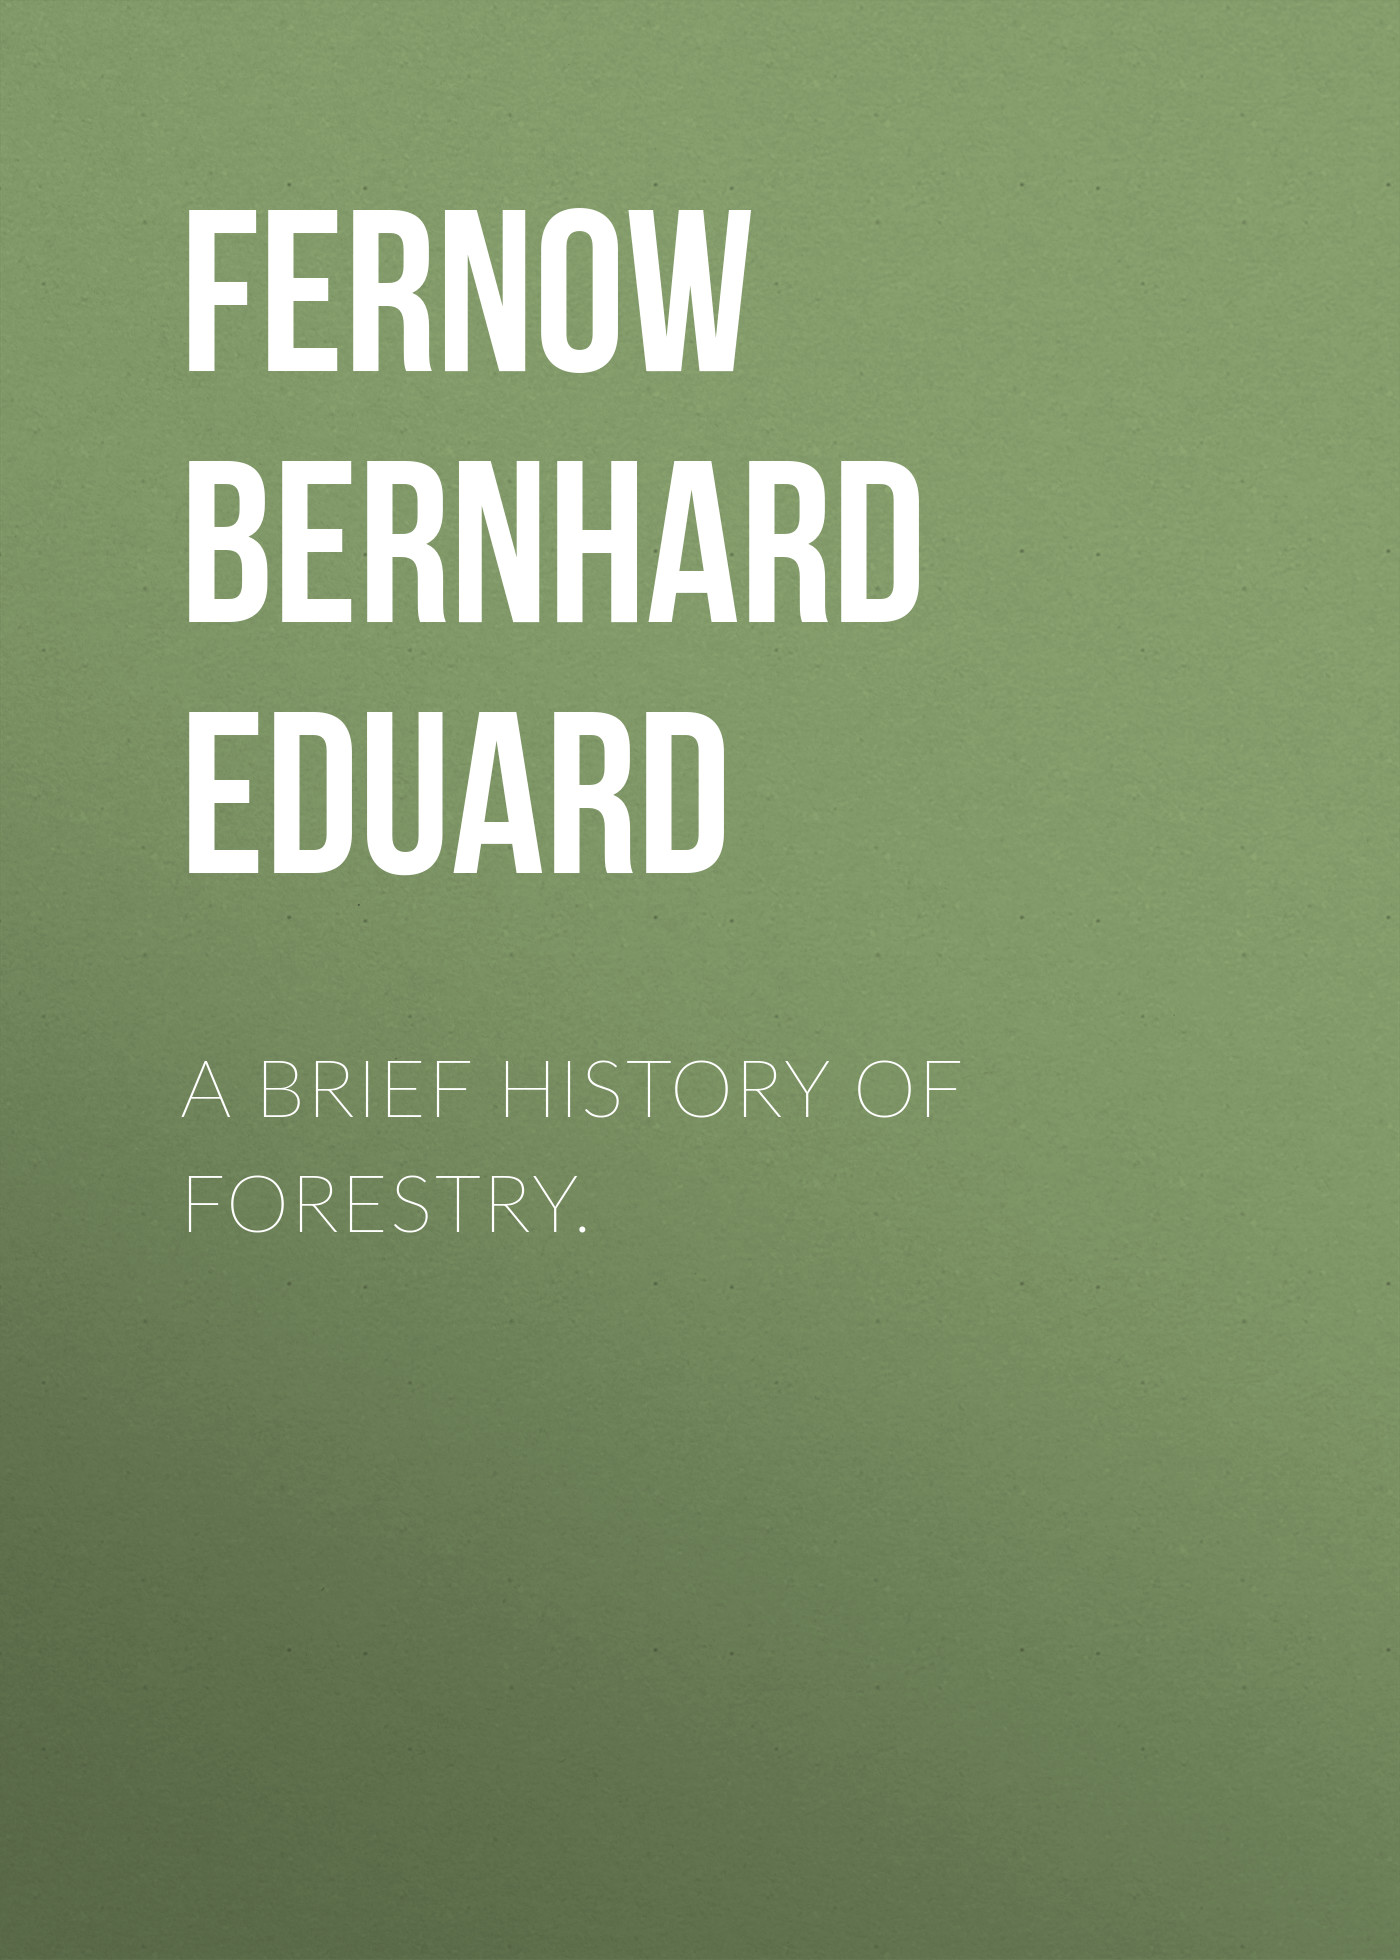 Fernow Bernhard Eduard A Brief History of Forestry. kenneth appold g the reformation a brief history